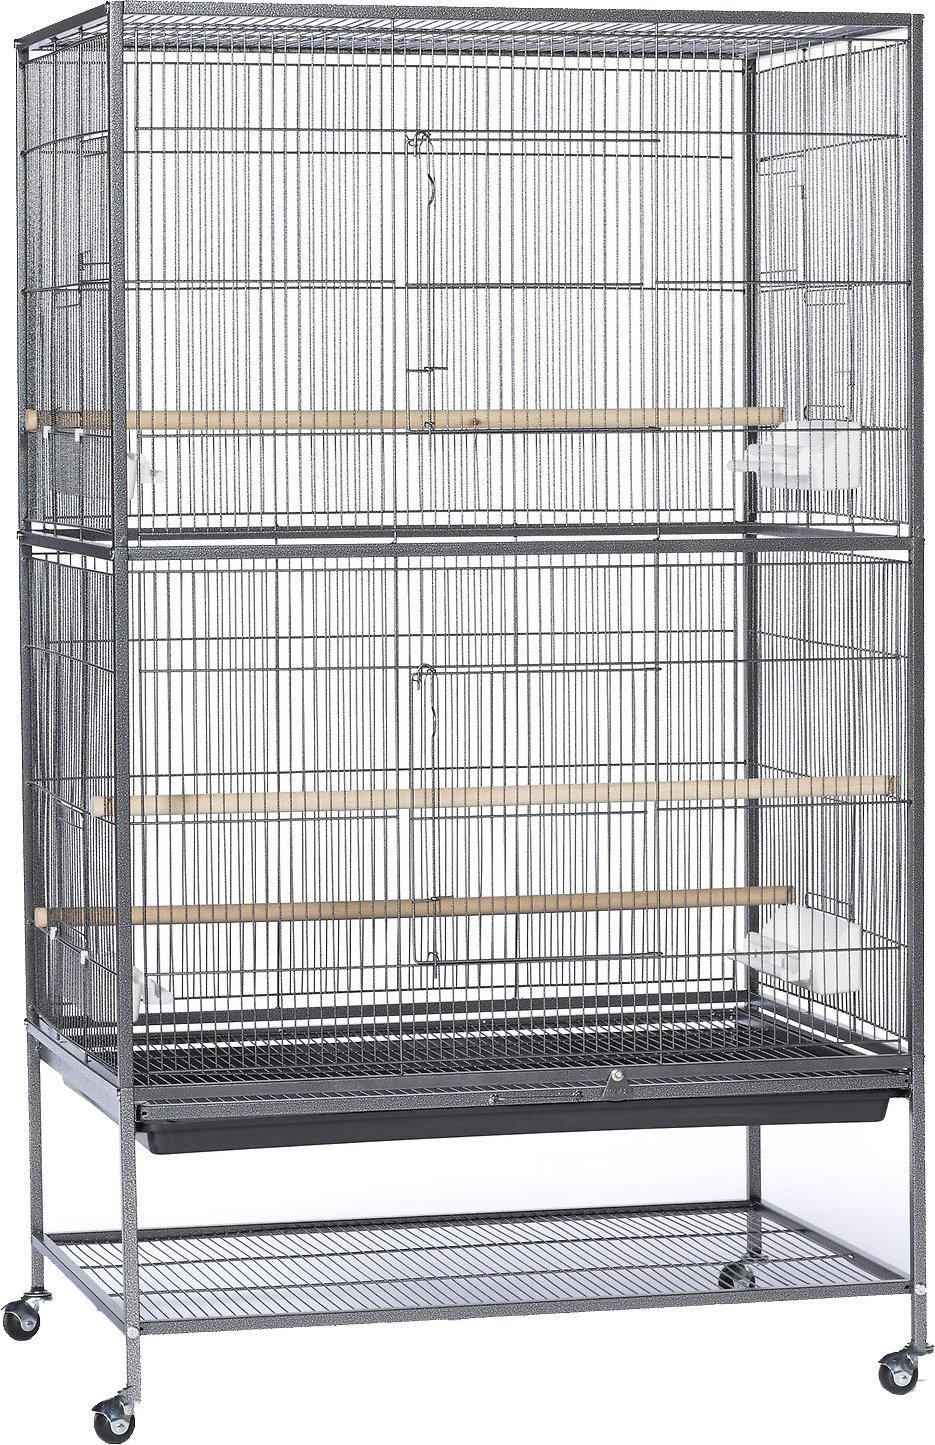 0d7e2441c6a2 Prevue Pet Products Wrought Iron Small & Medium Birds Flight Cage, Black  Hammertone